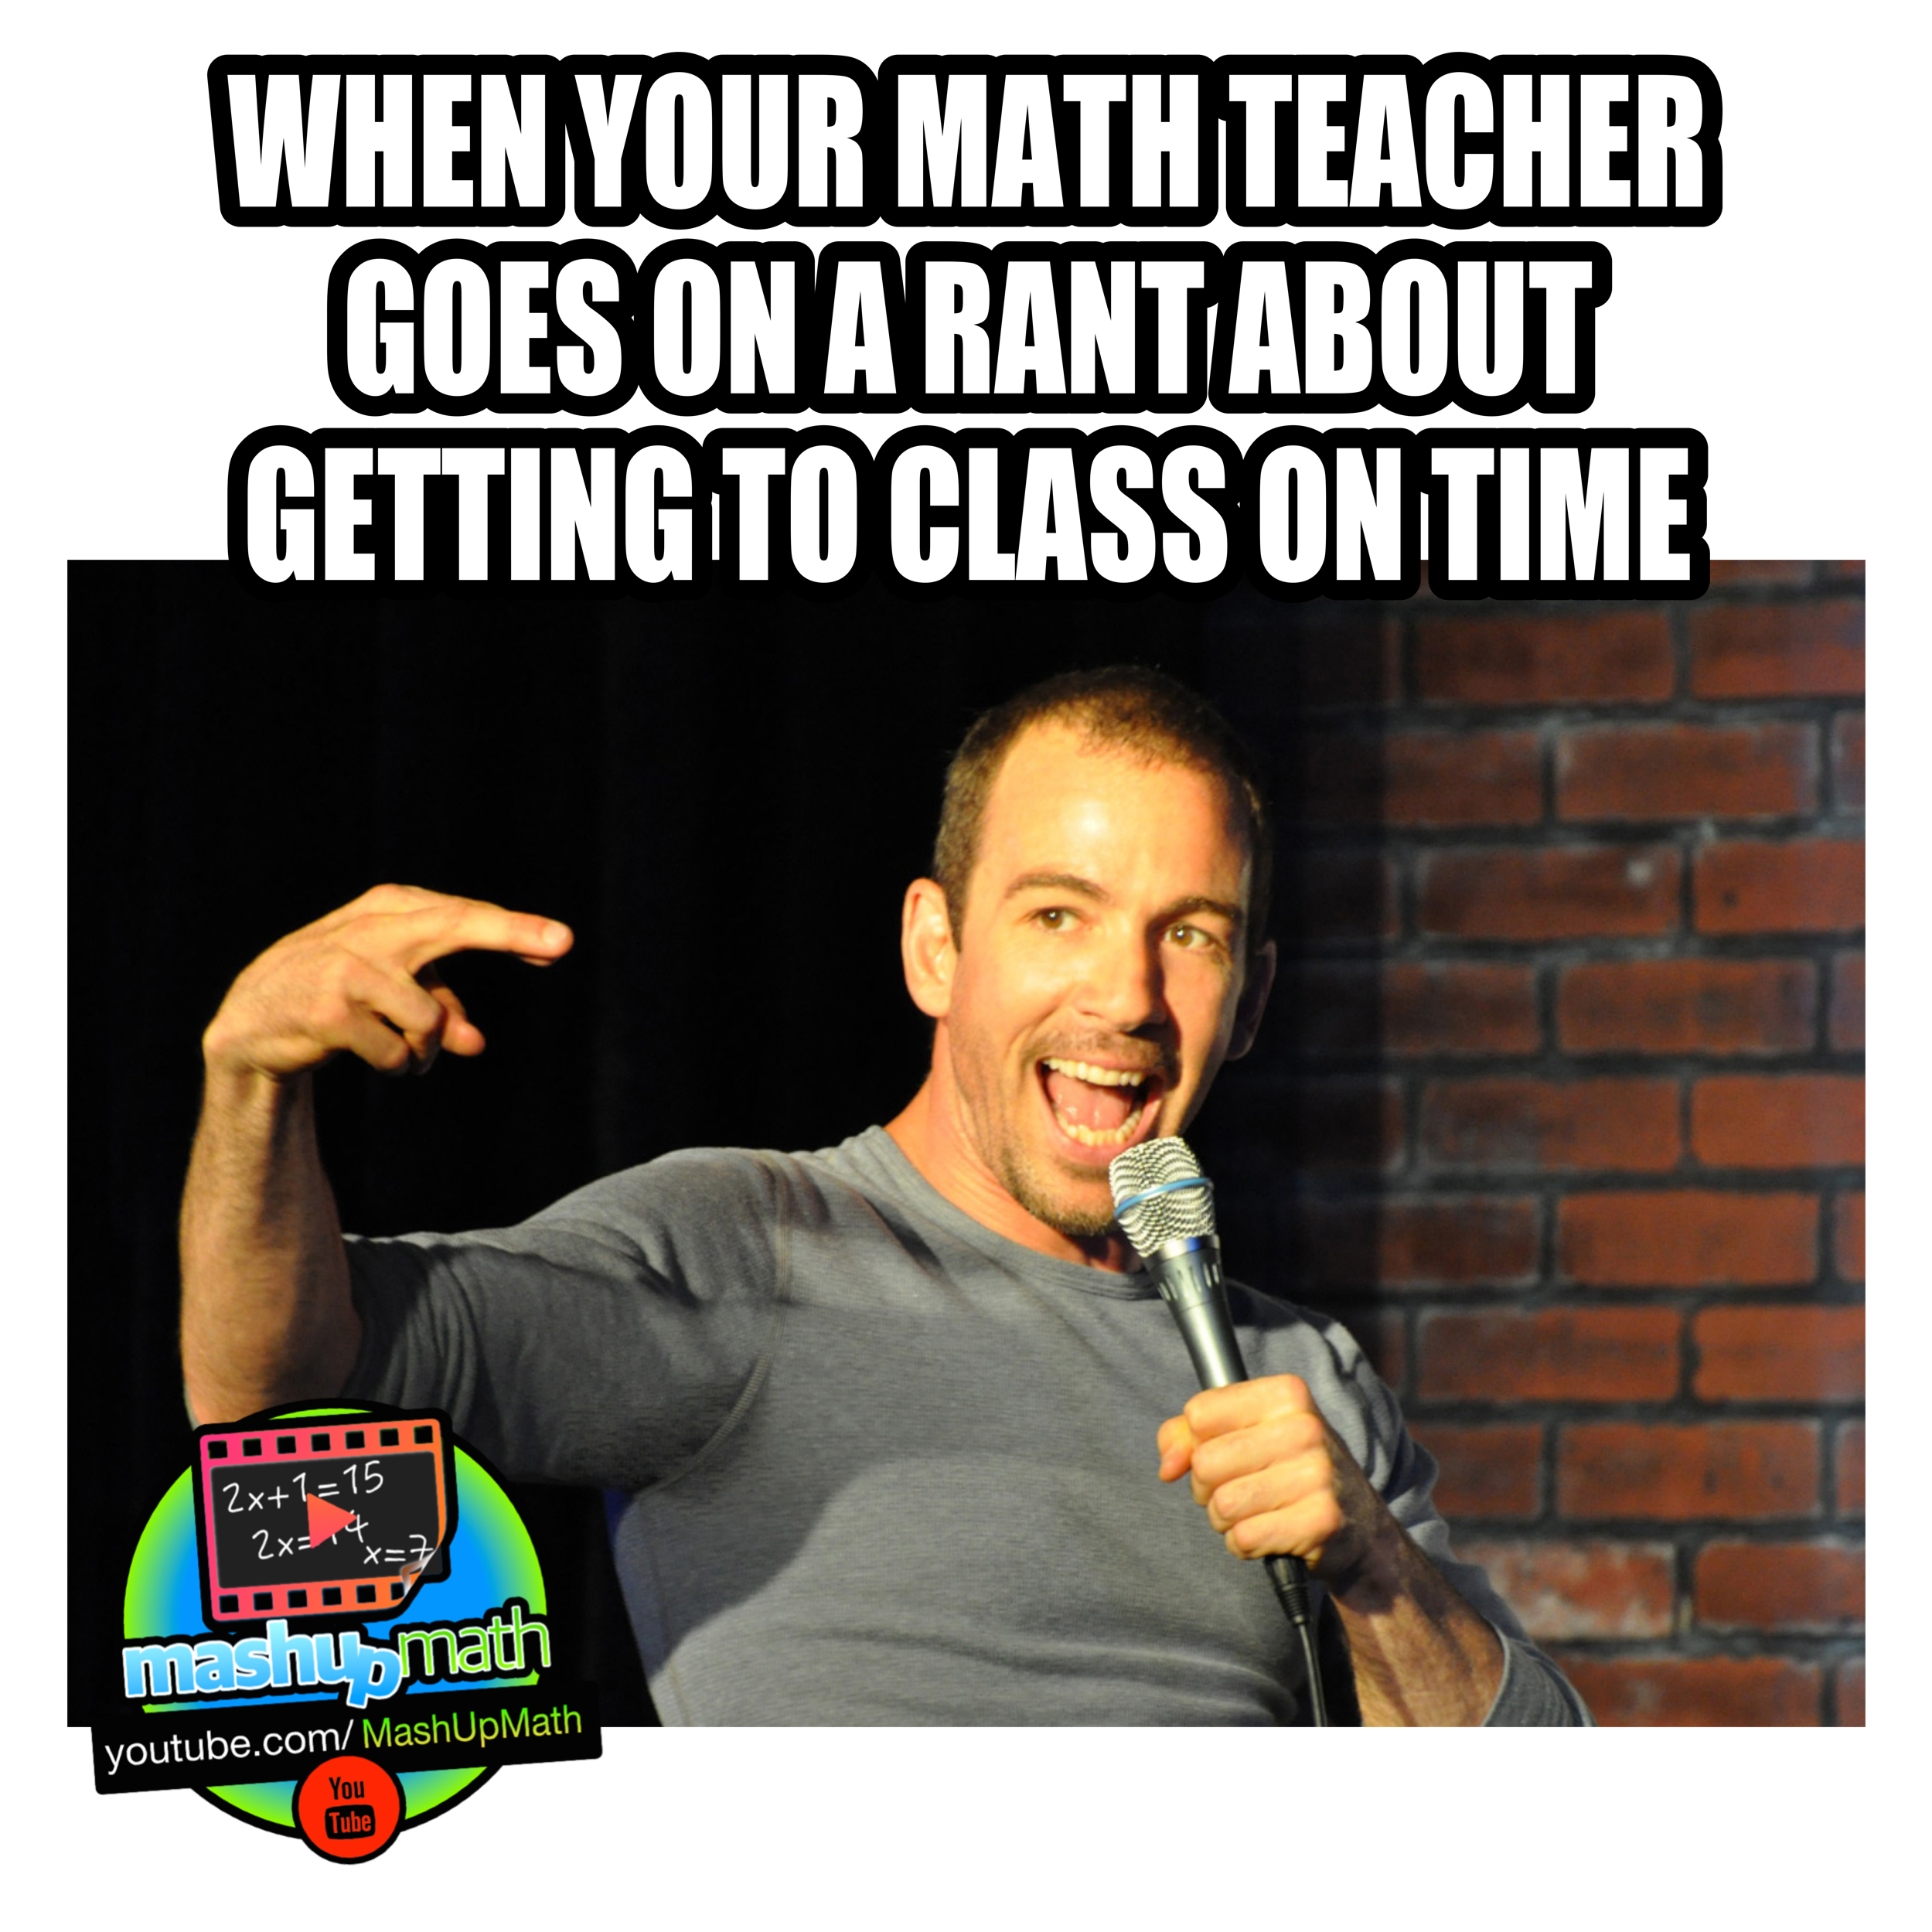 Who Knows That Teacher Who Is Always Going Off On Rants Lol Meme Studentlife Teacherlife Classroom Memes Learning Mathematics Free Math Resources